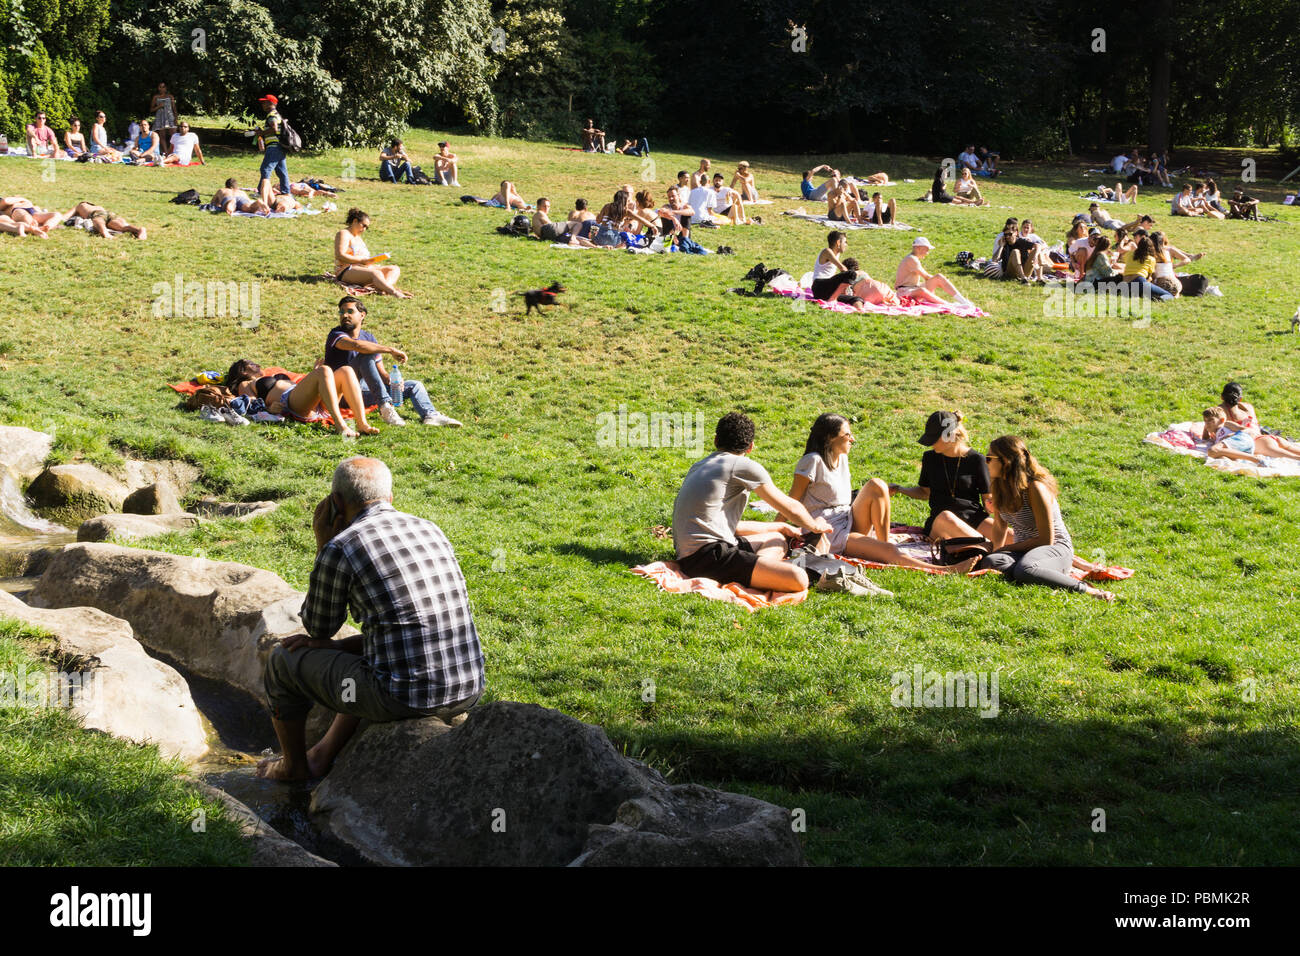 Paris park - People enjoying hot summer afternoon in the Parc des Buttes Chaumont in Paris, France, Europe. Stock Photo